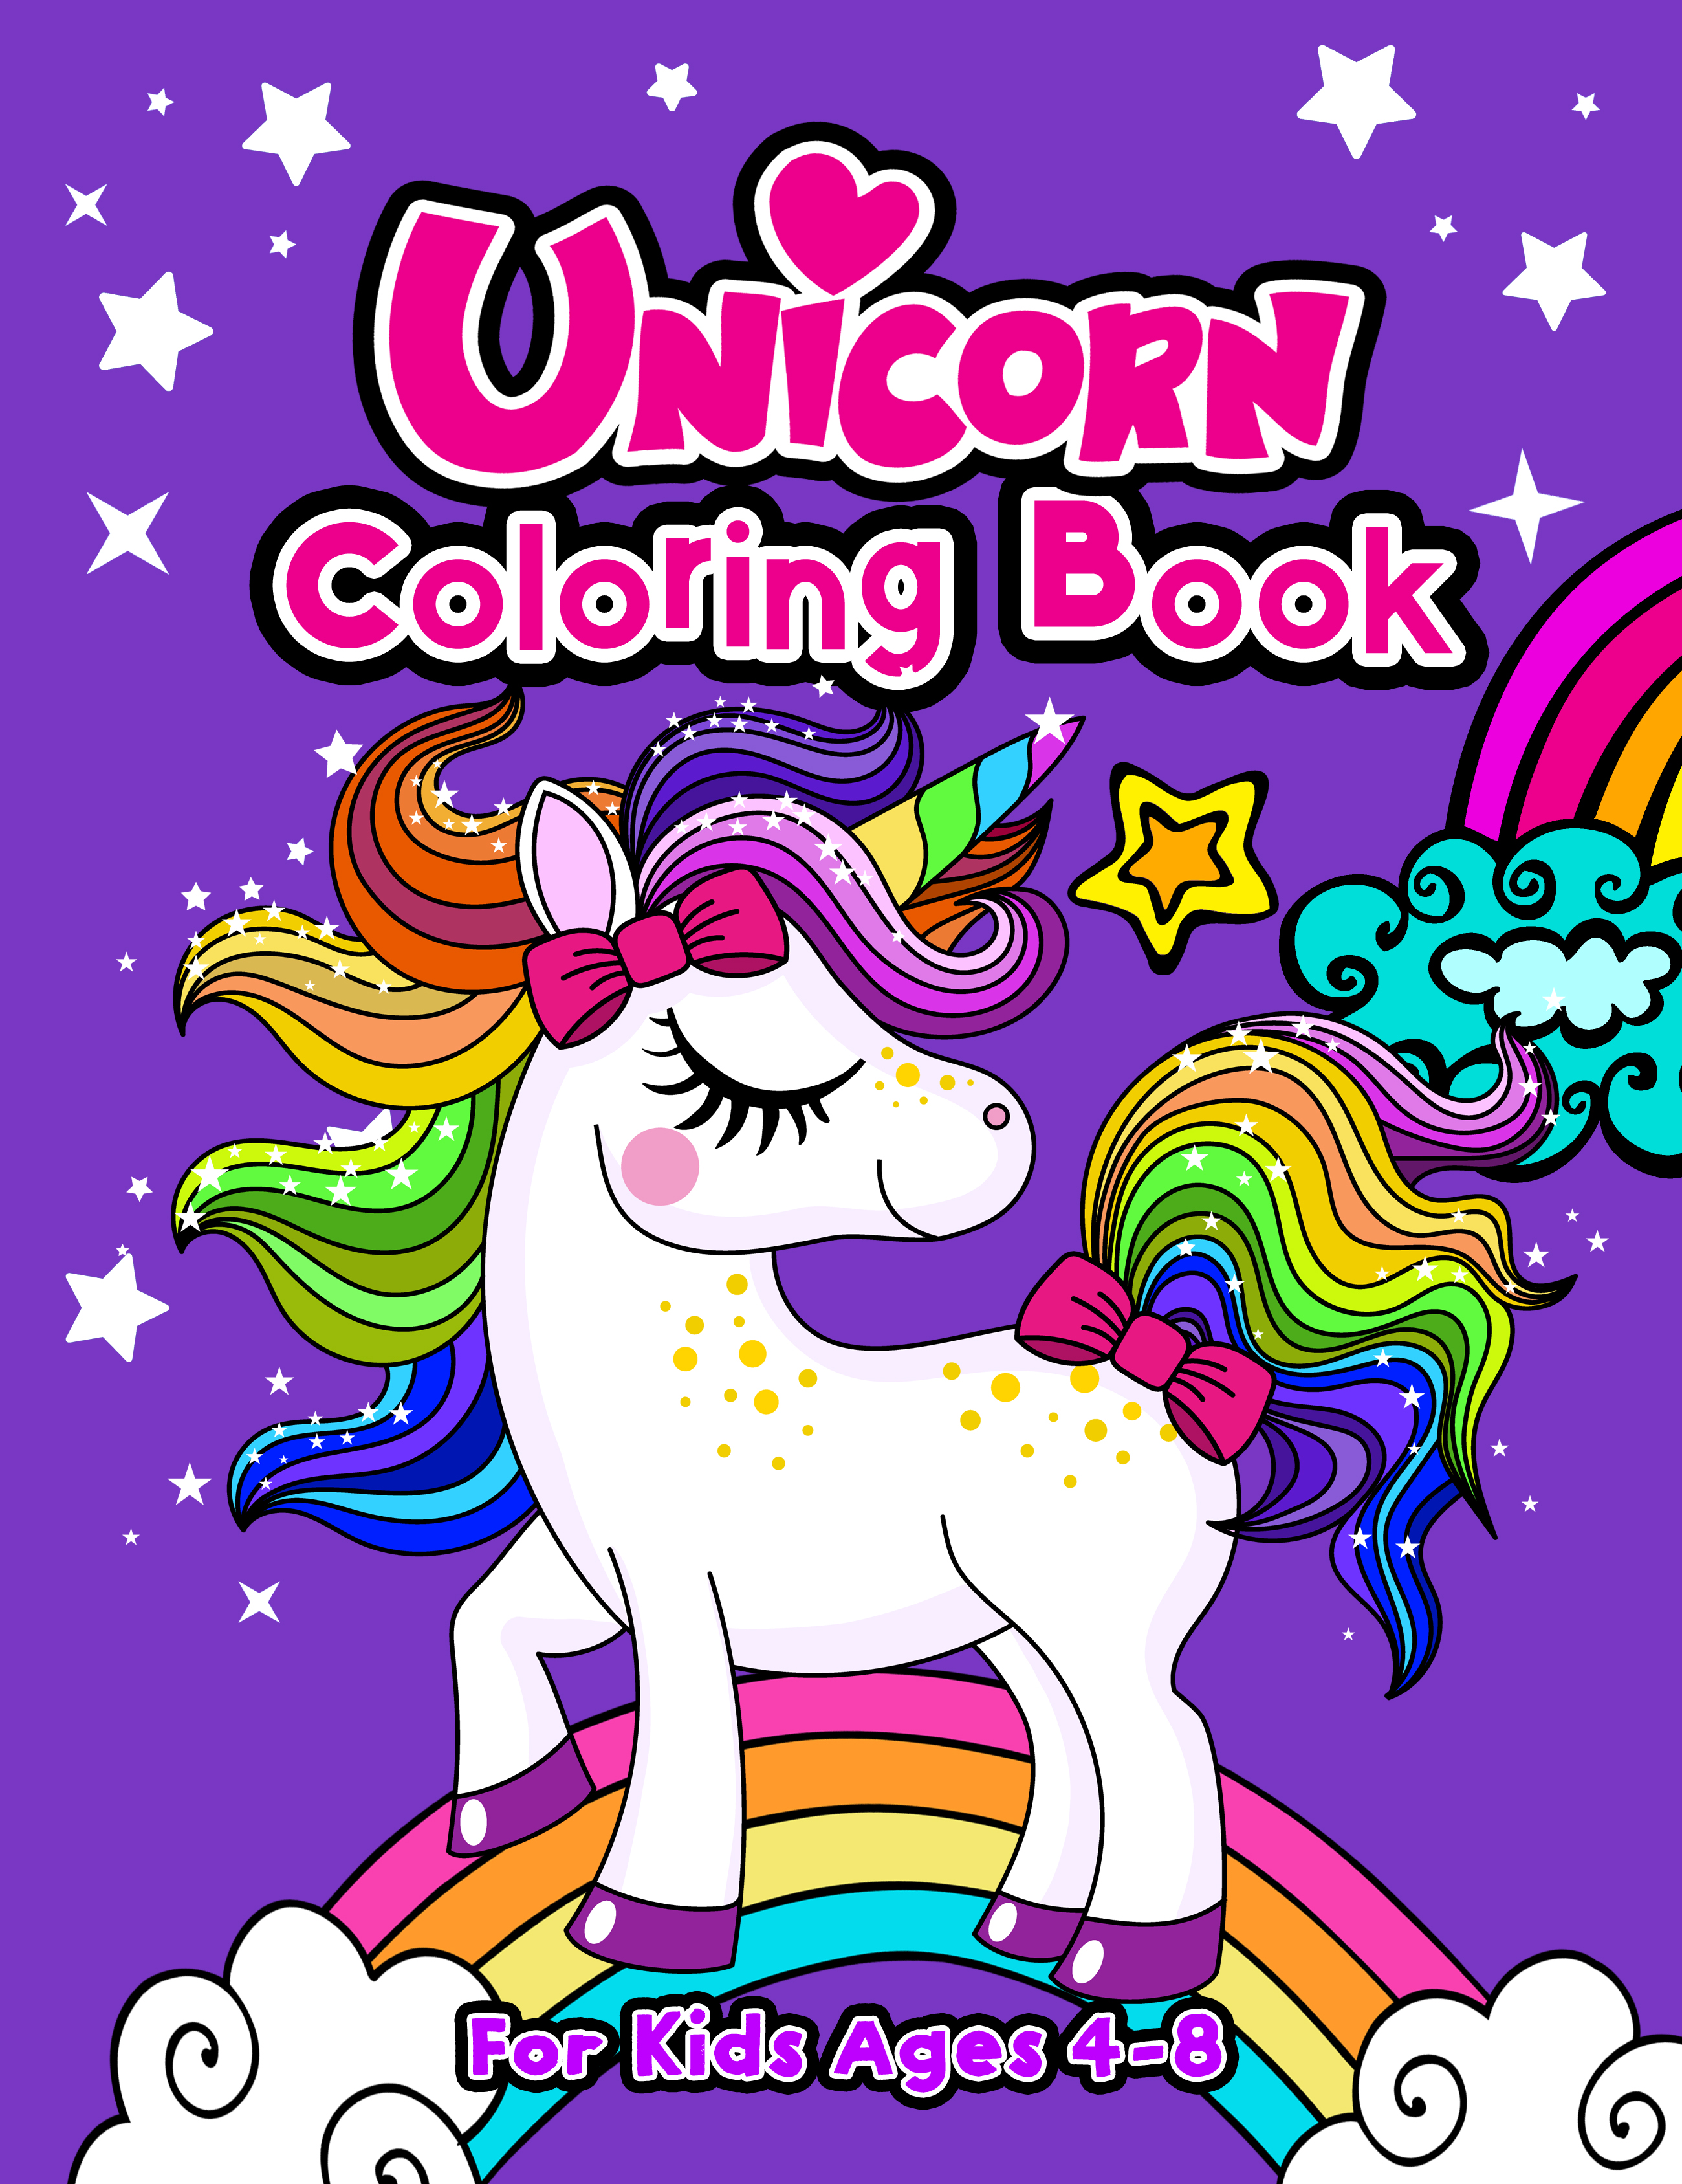 Unicorn Coloring Book For Kids Ages 4-8FRONT